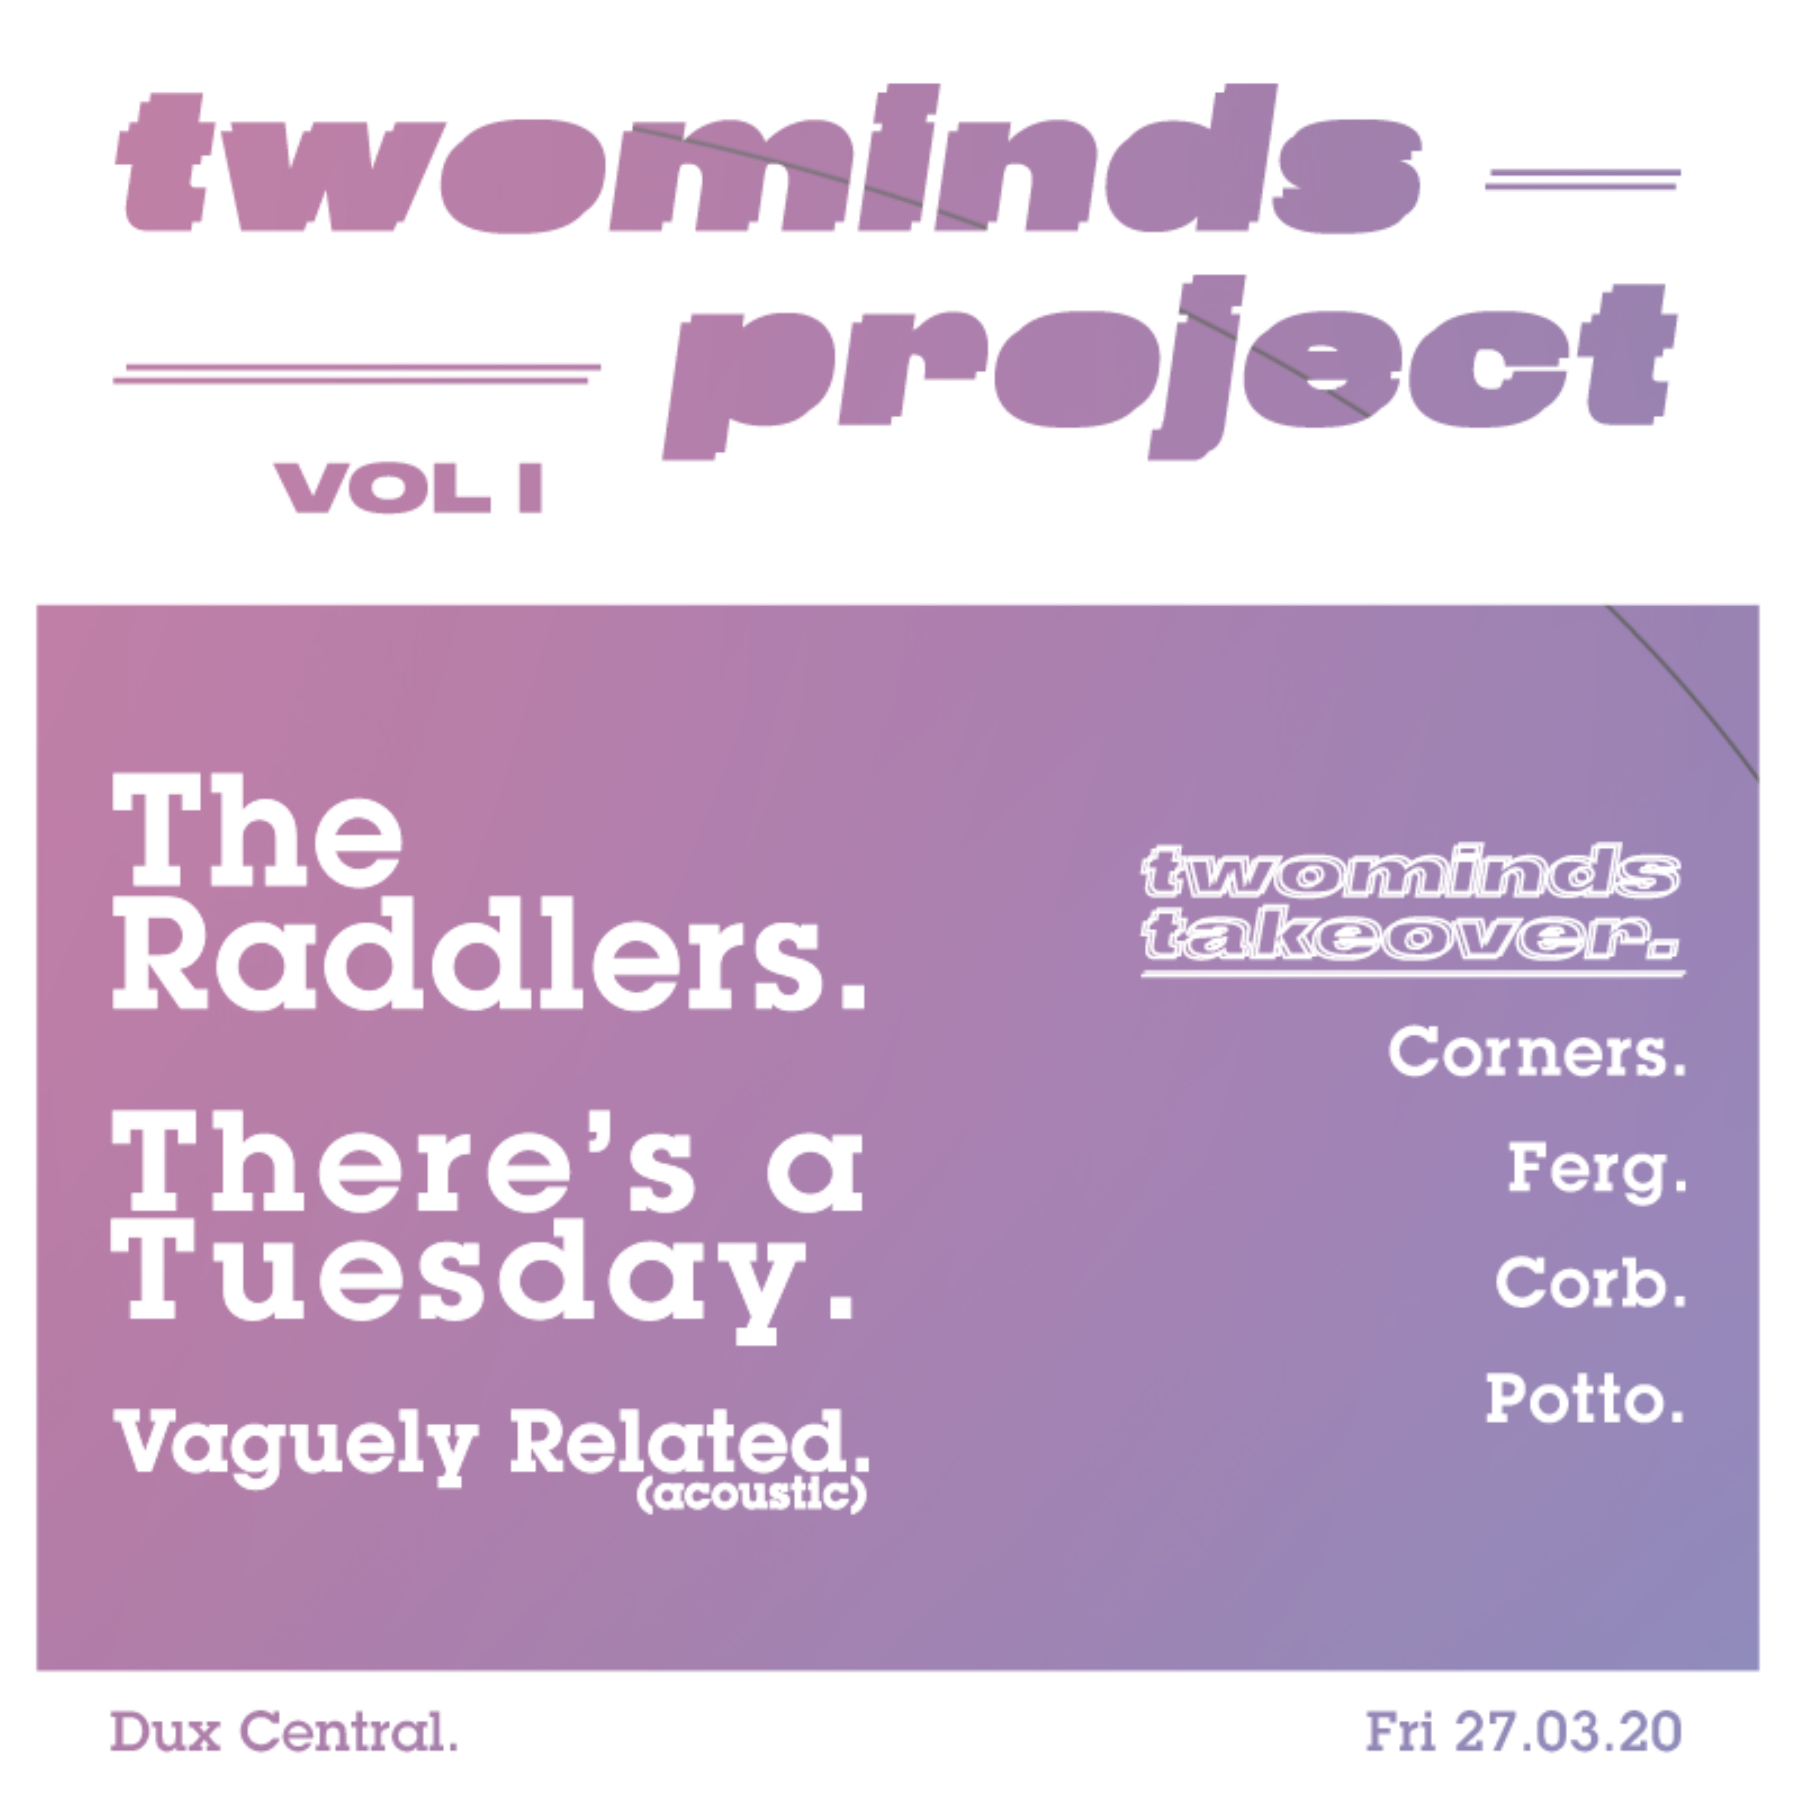 twominds project - Vol I - Cancelled